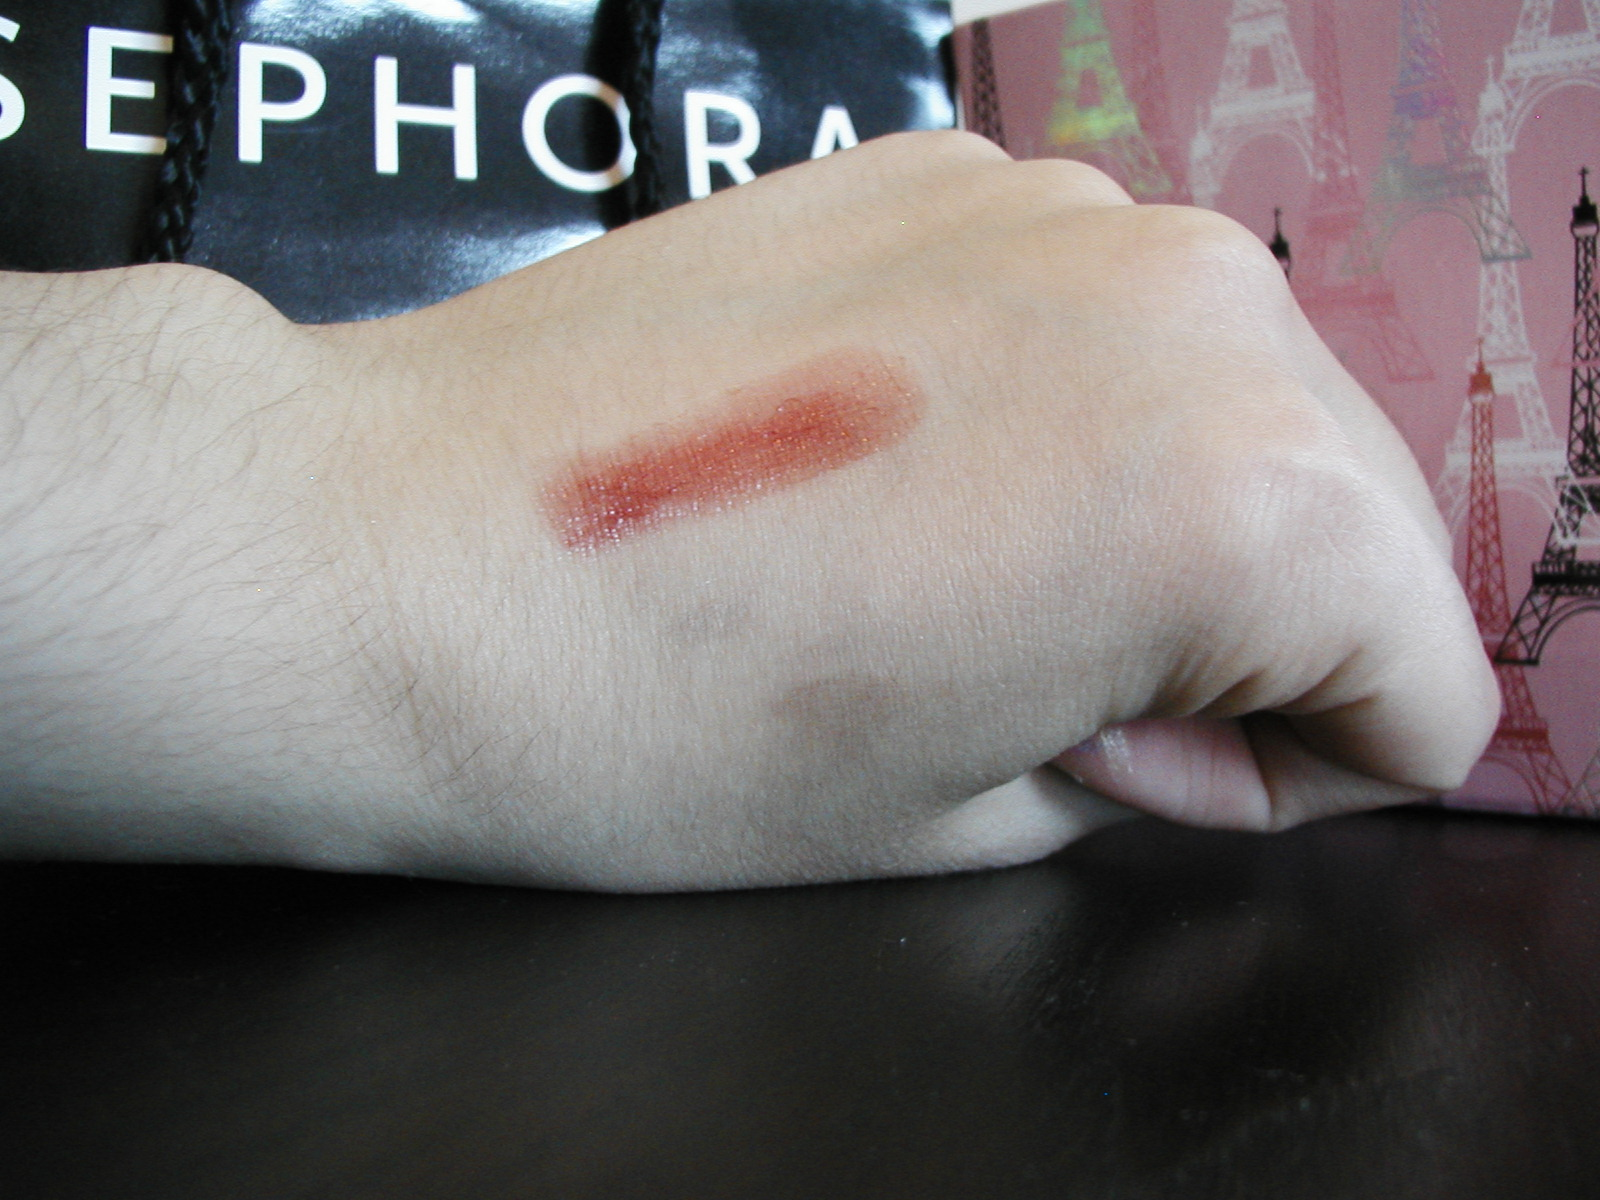 Amateur Adolescente Fotos Porno burt's bees lip shimmer~fig, review & swatch - a thing of beauty